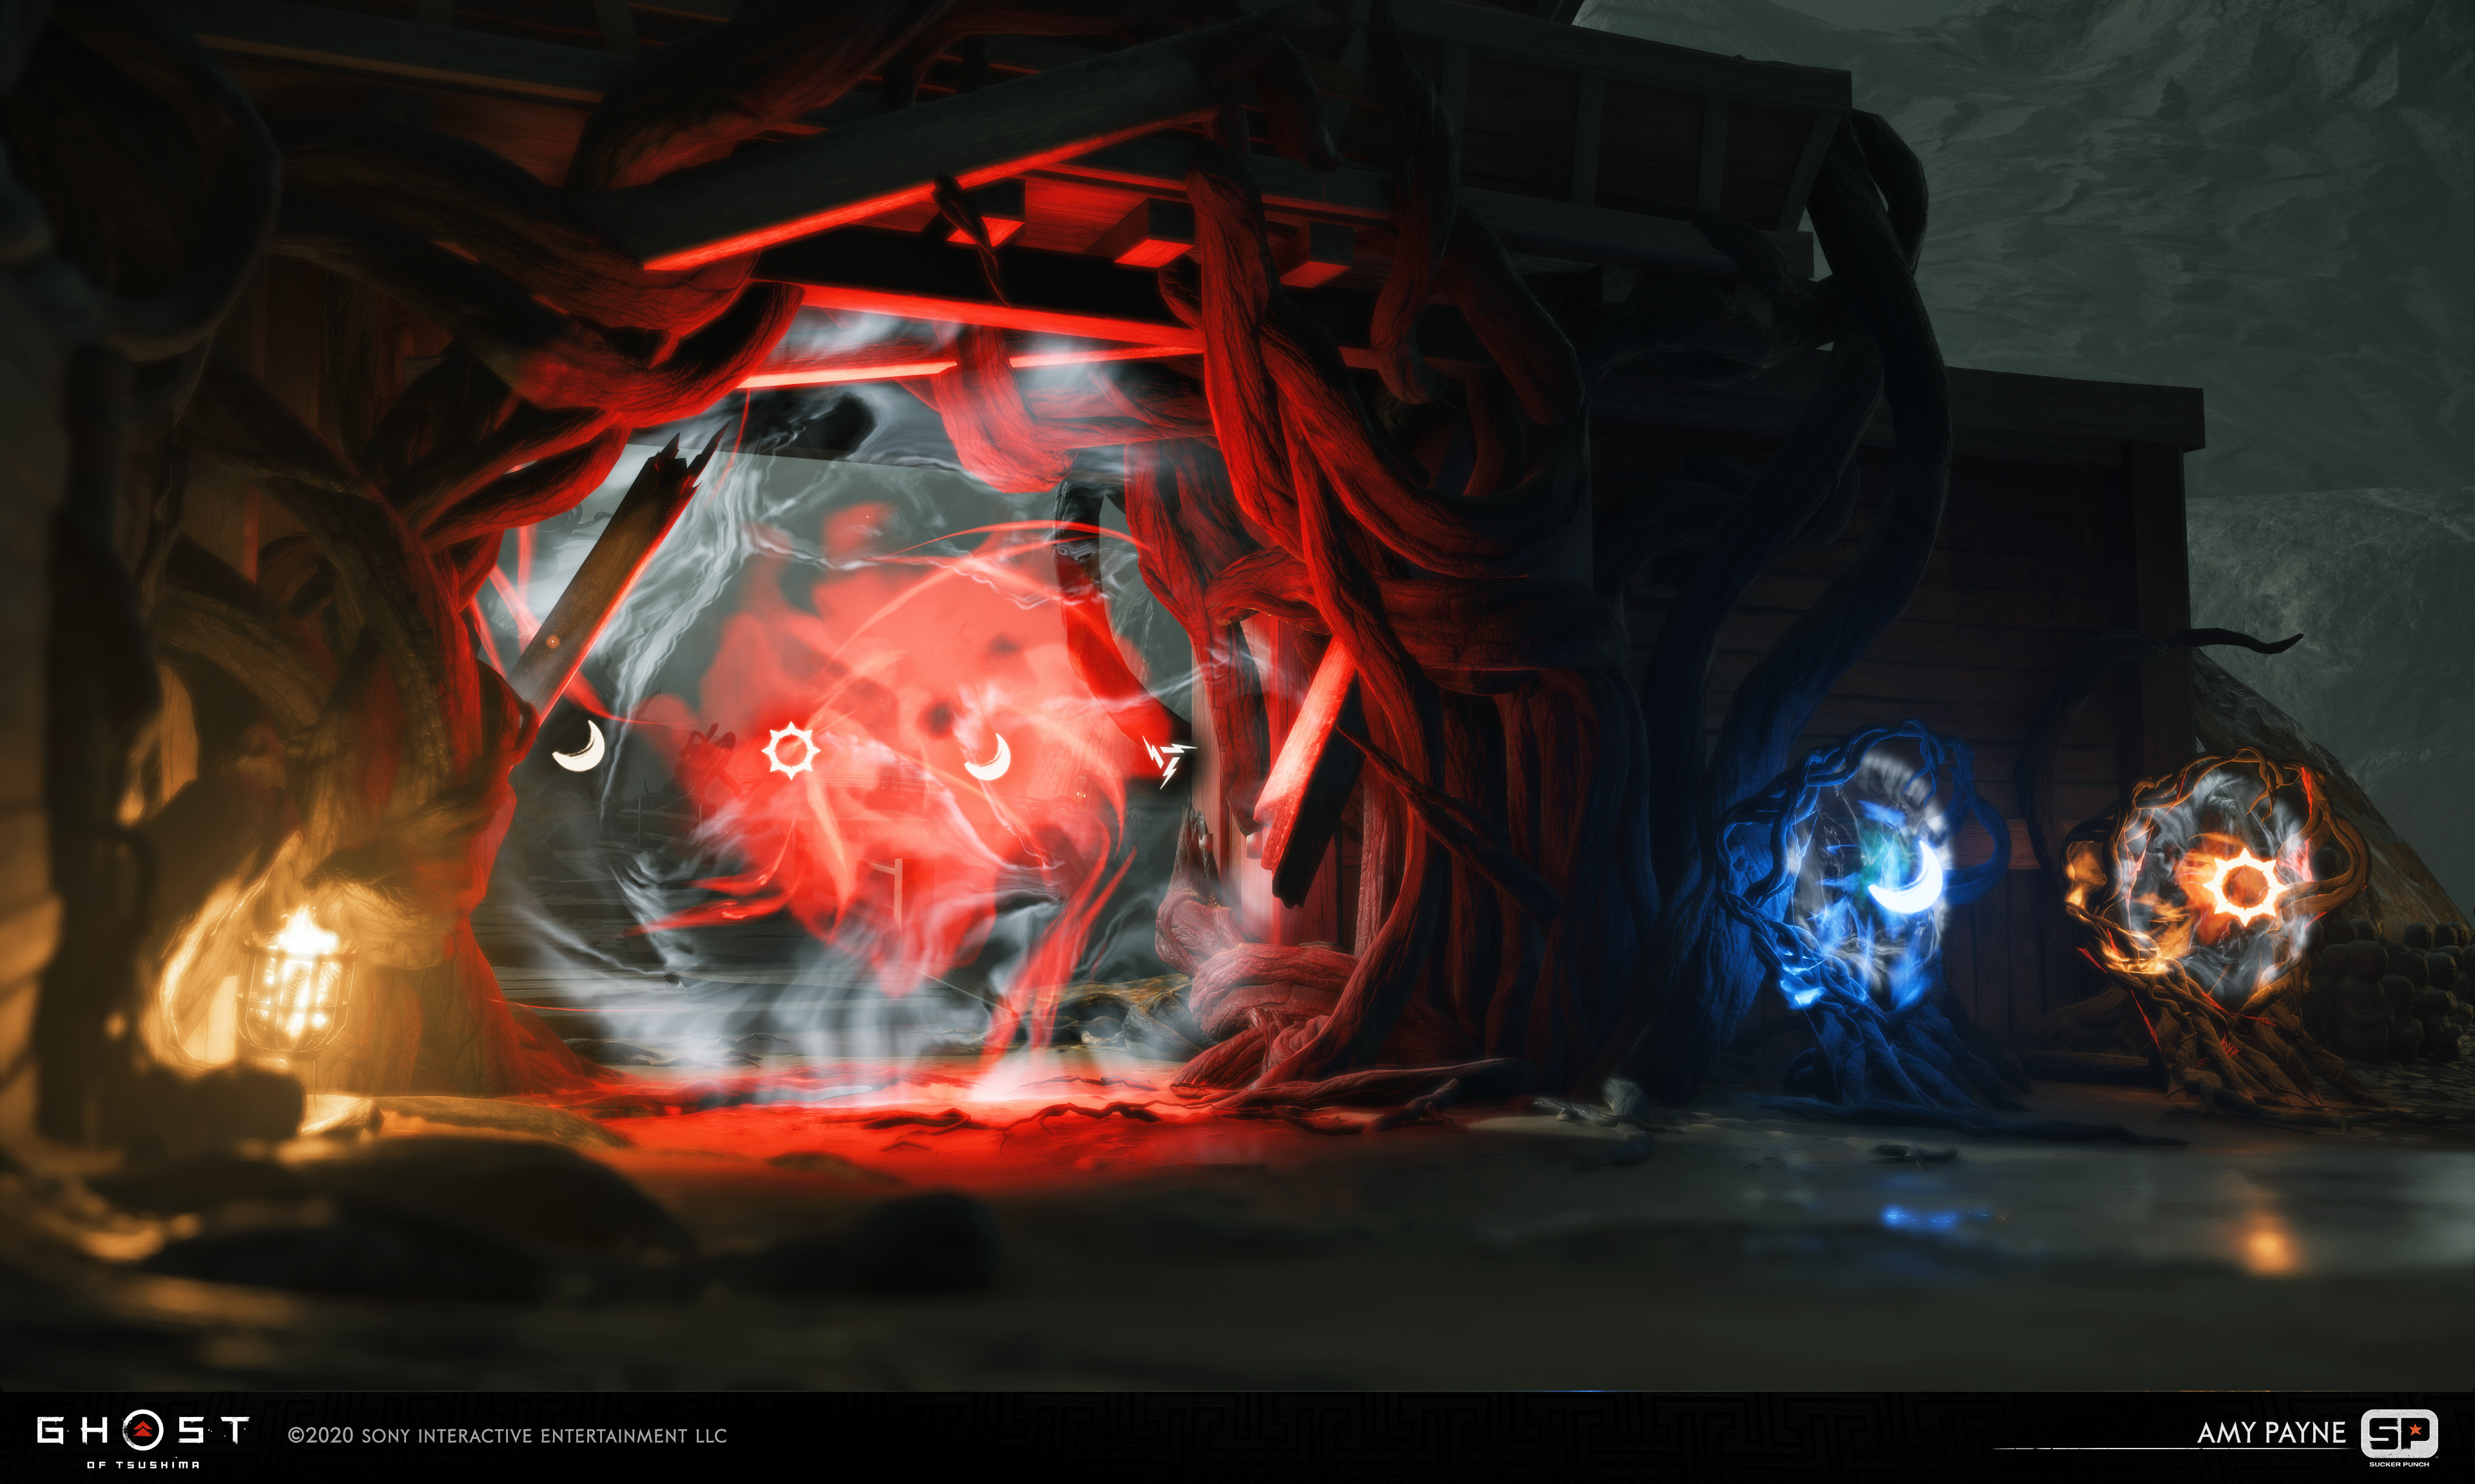 Cursed attunement gate and attunement interacts. Kitbashed together from vine pieces made by Douglas Davis. Matt Vainio made the FX, and Dongjoon Lee was the location artist who got this area put together.